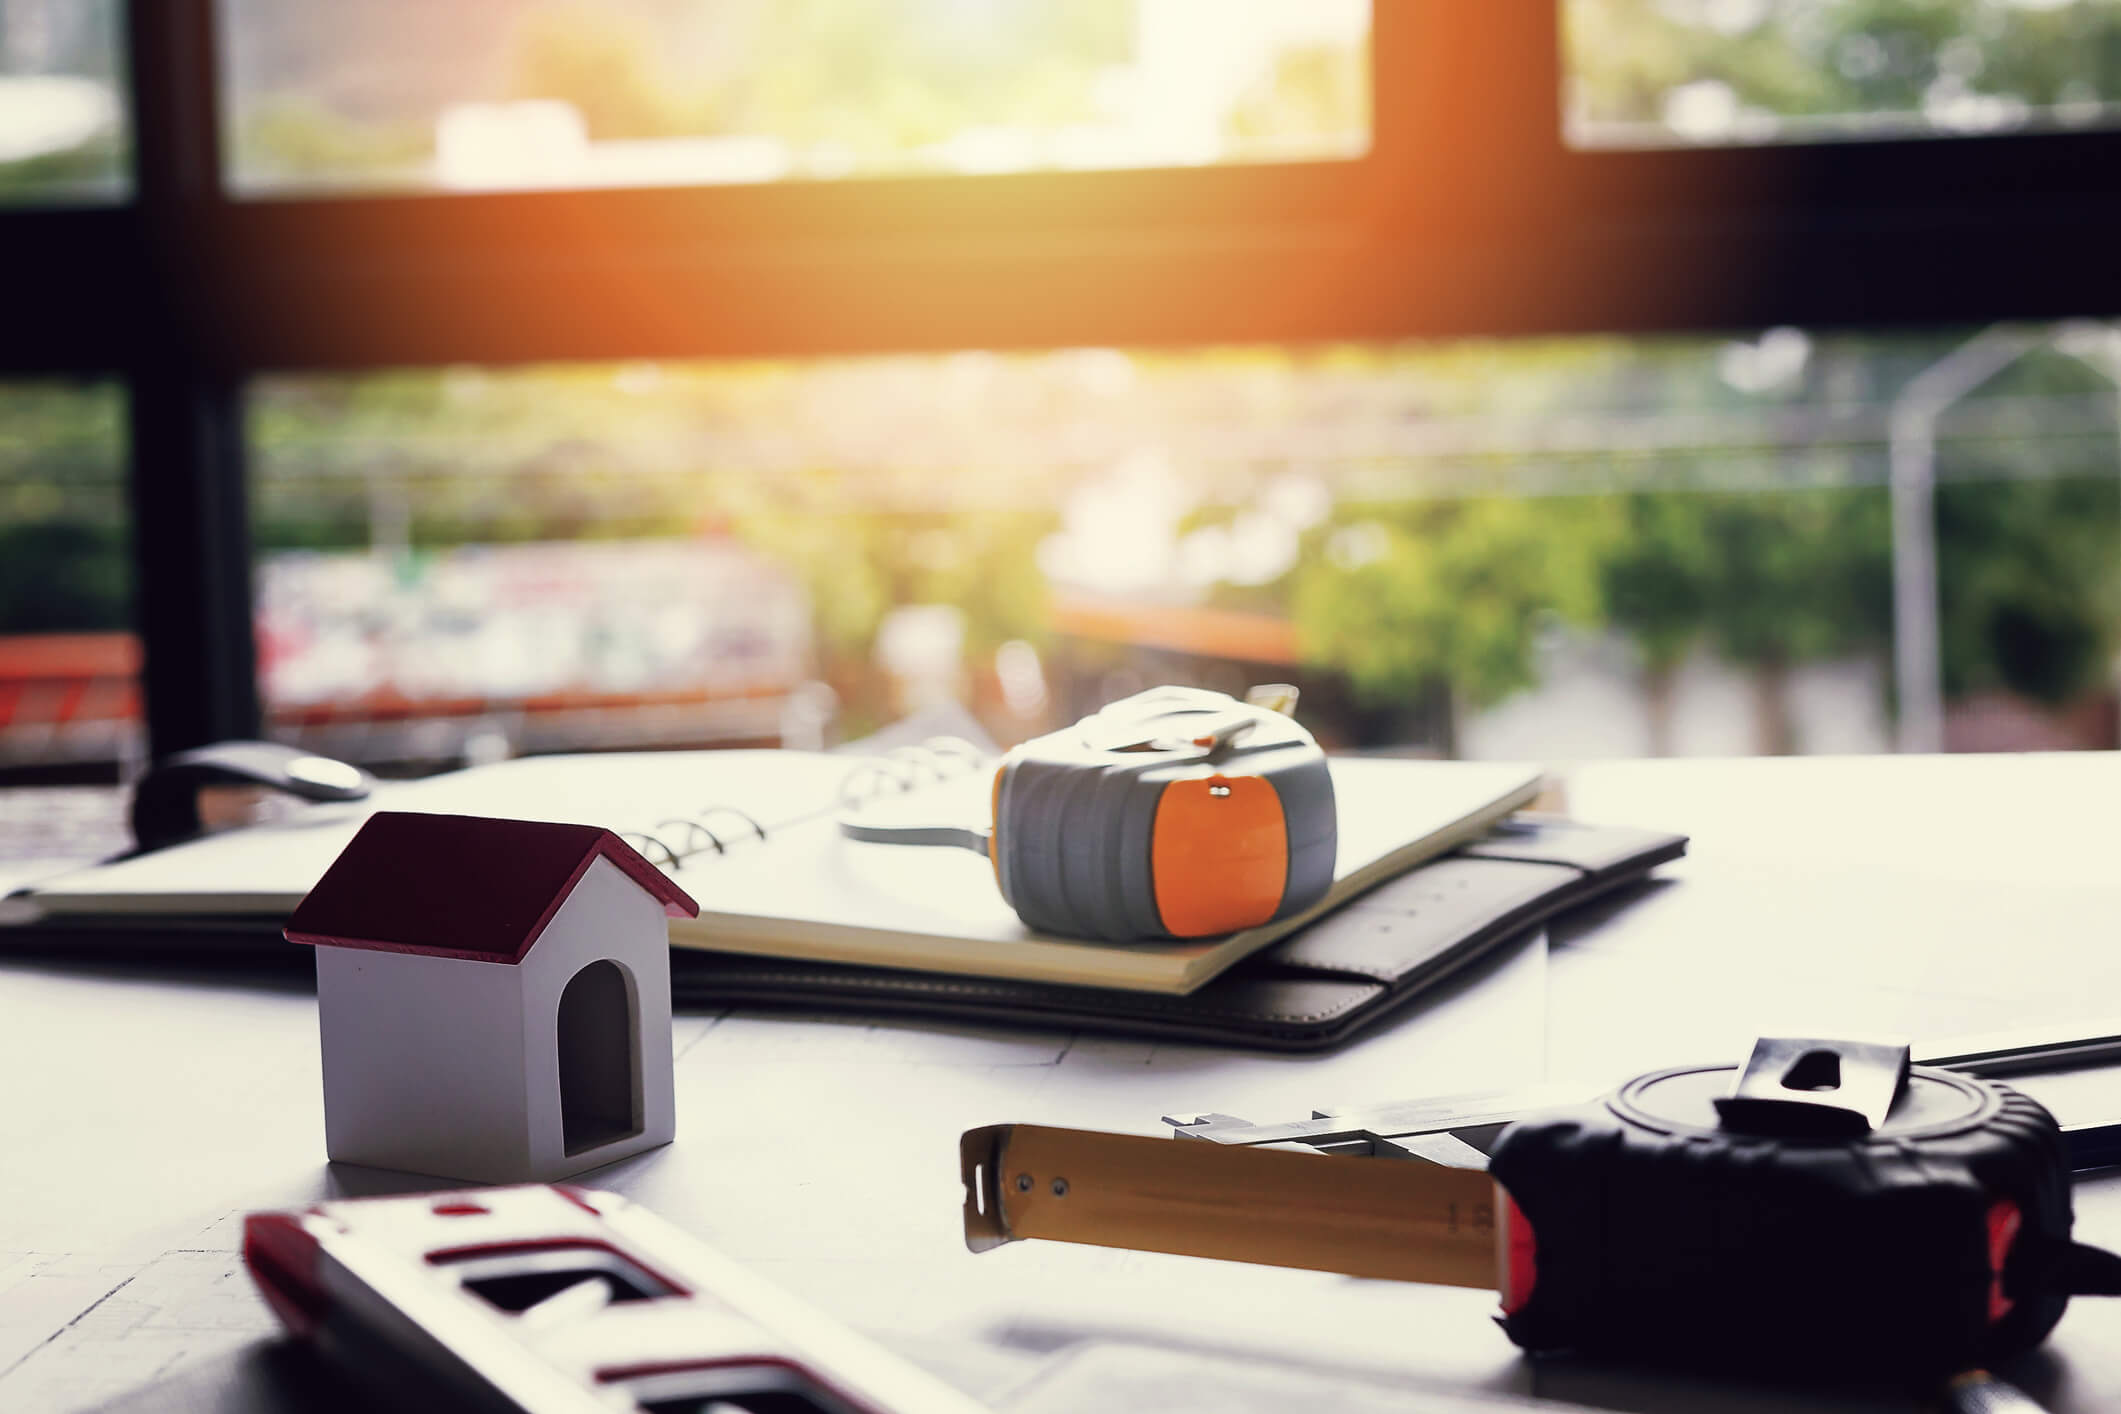 REI Investing Tips: When Is It the Right Time to Scrape Your Investment Property?